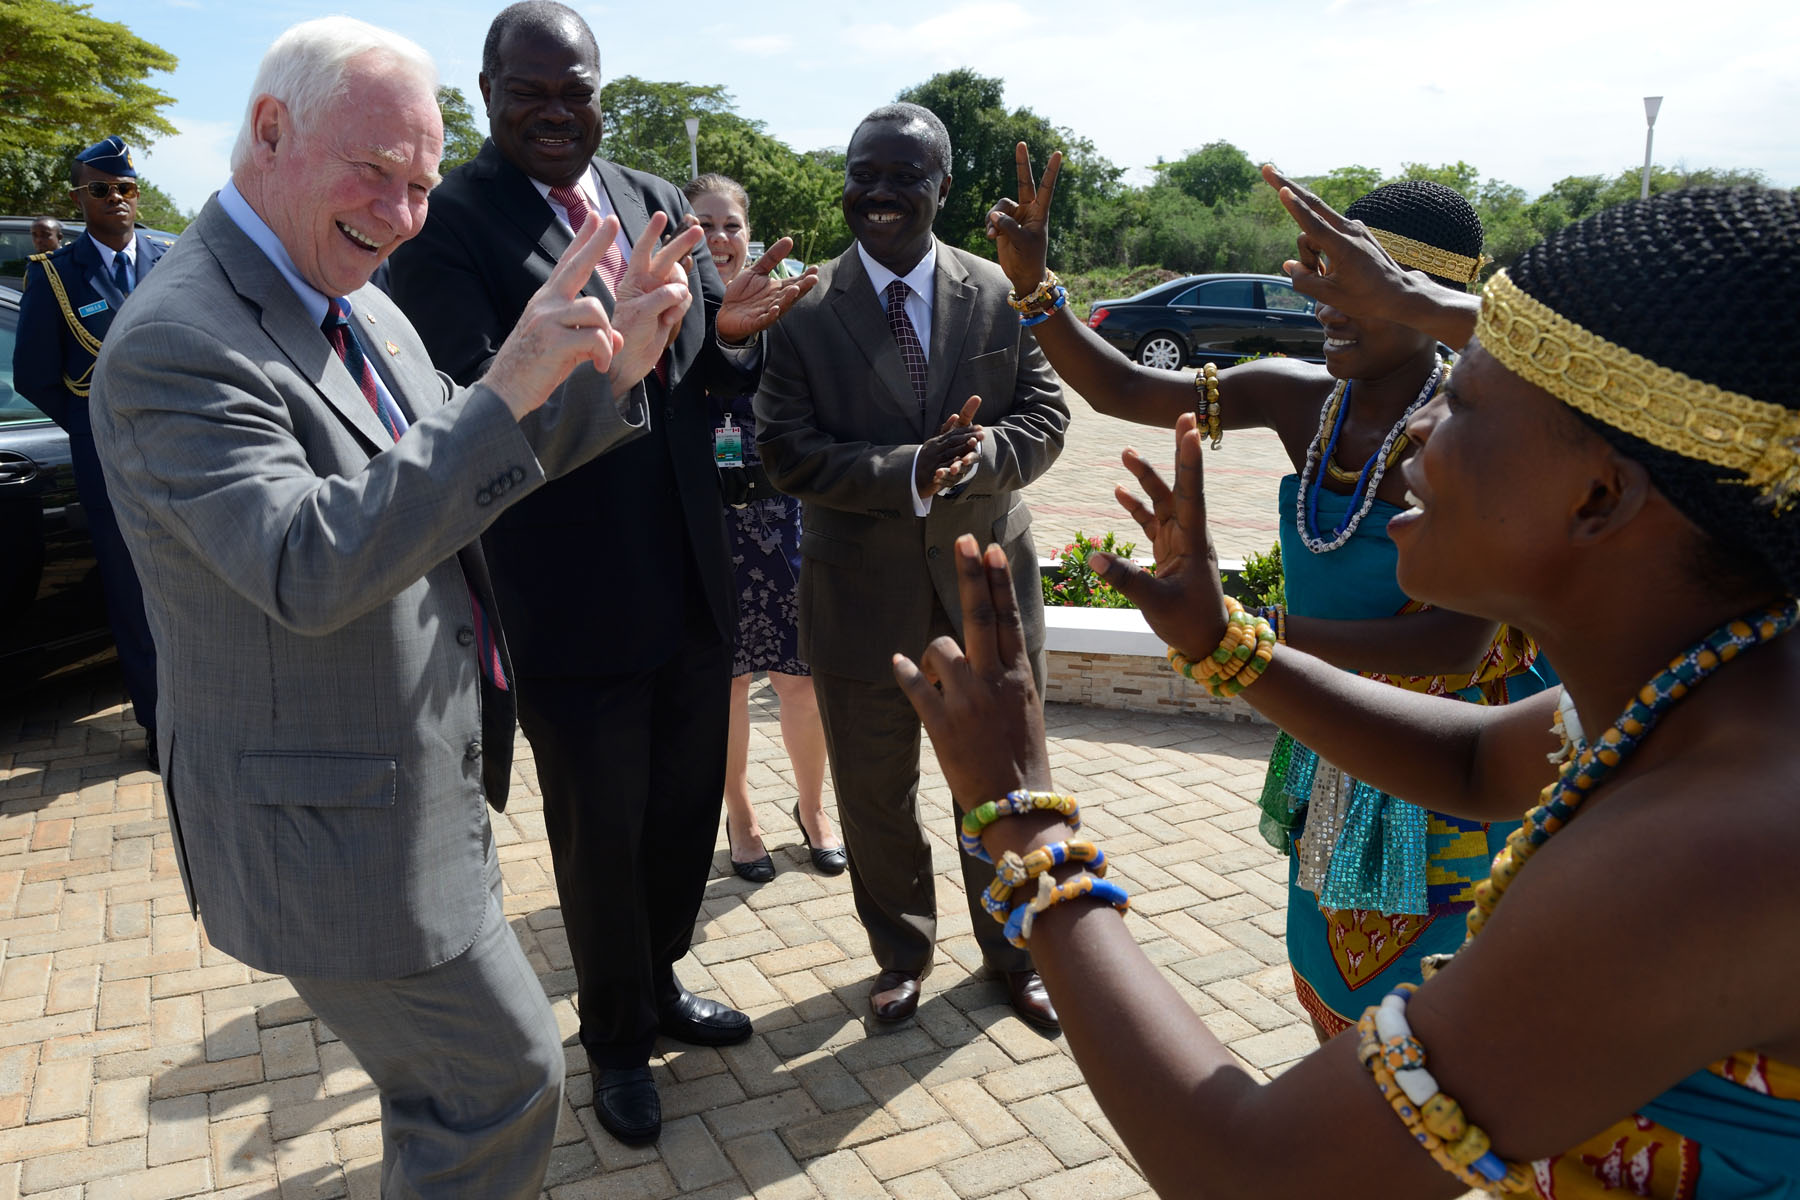 In the afternoon, His Excellency was welcomed to the University of Ghana by the Vice-Chancellor, Professor Ernest Aryeetey, and a group of dancers.